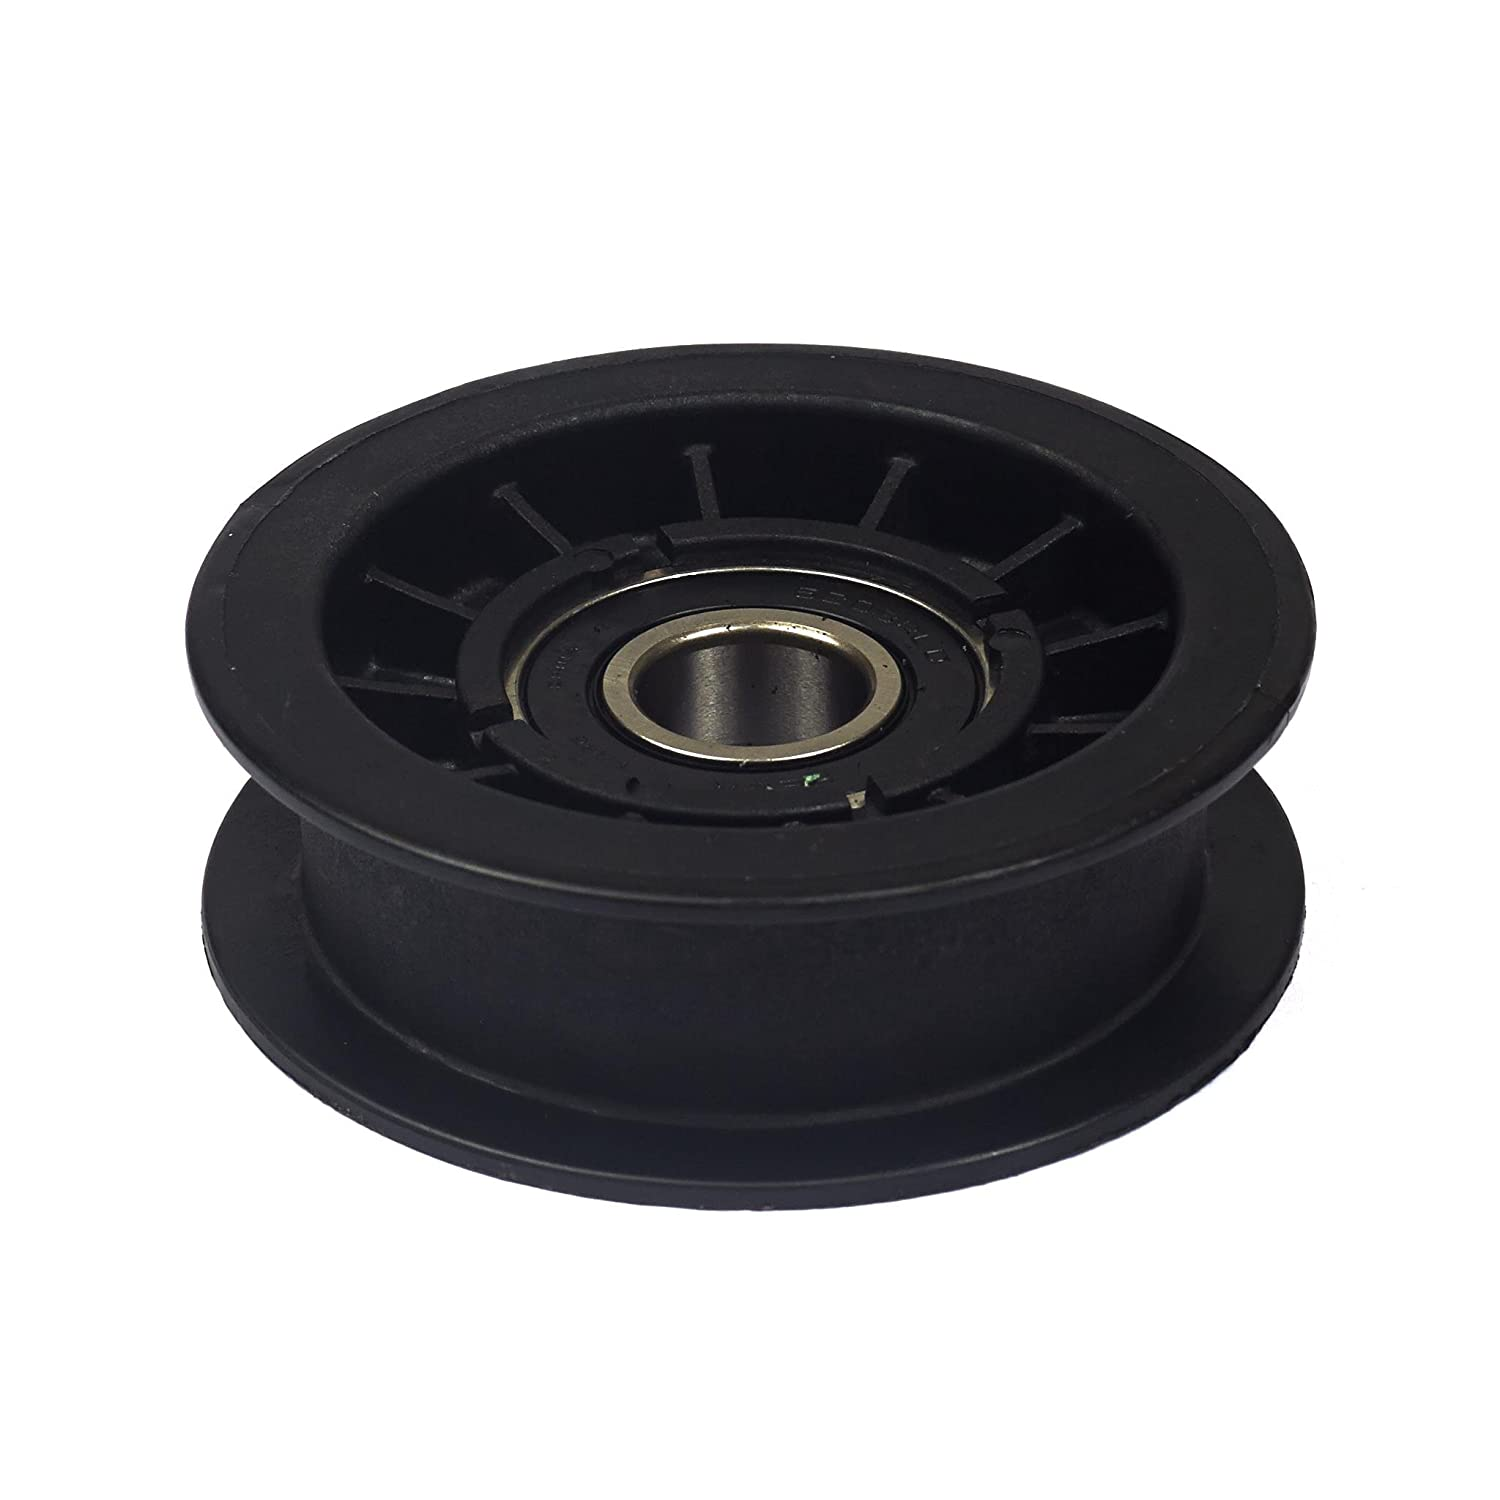 Murray 690409MA Idler Pulley 2-3/4-Inch Diameter for Lawn Mowers